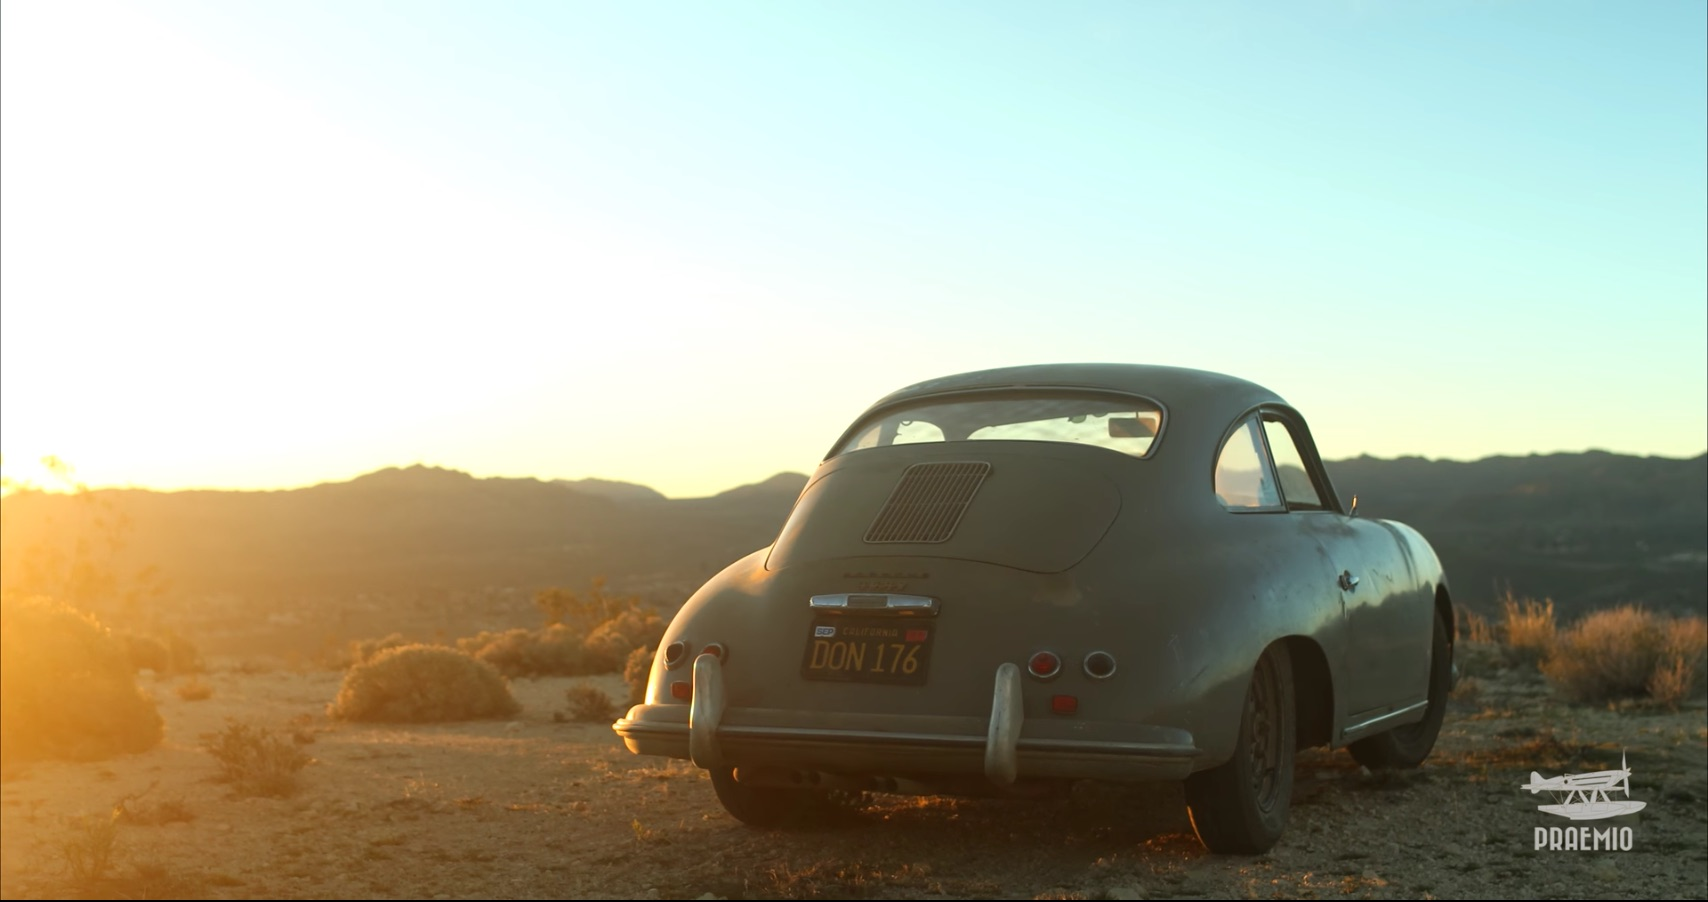 Porsche 356 Off Road in California